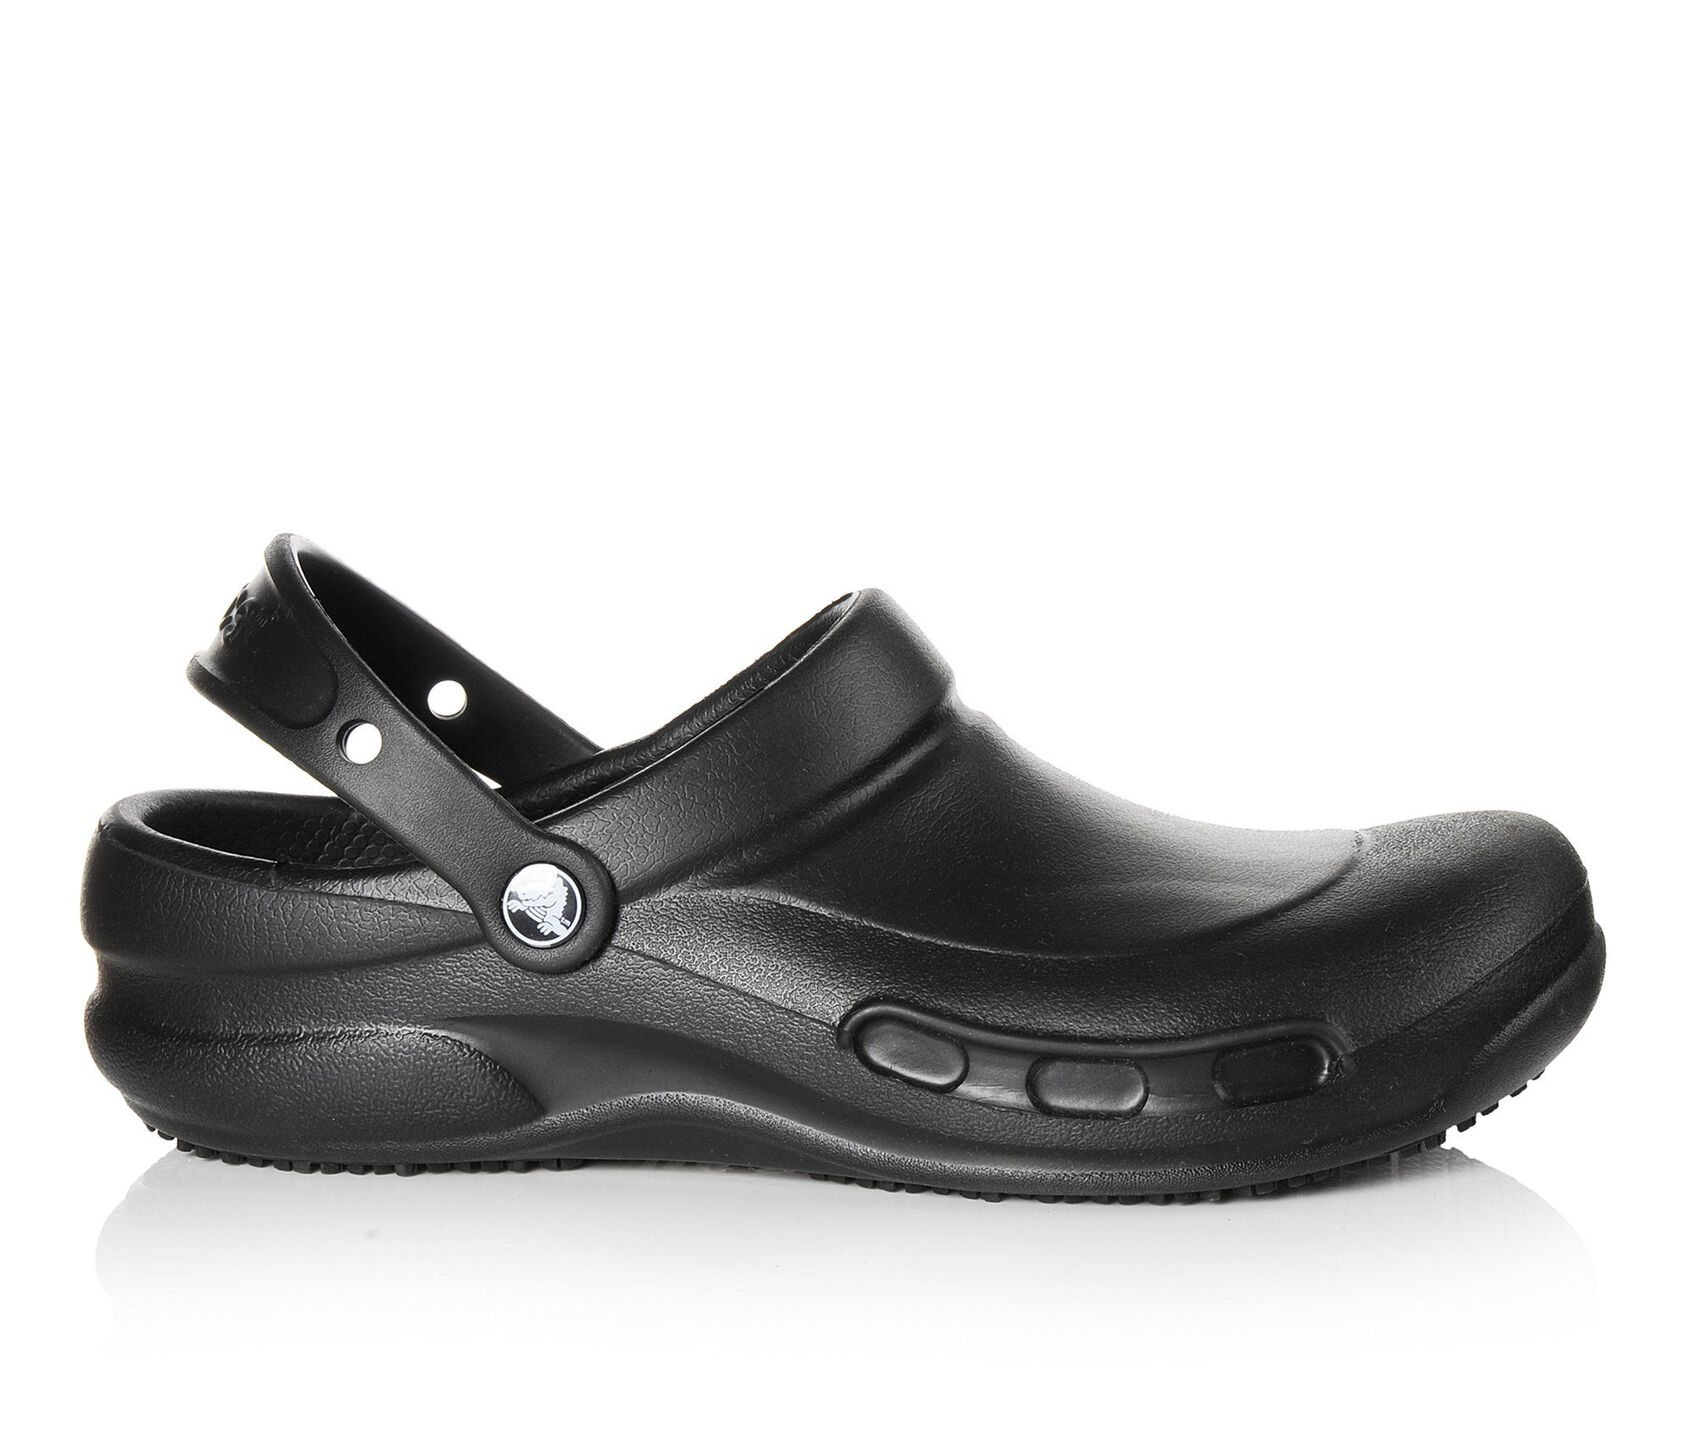 1f2c6e0f2618 Men s Crocs Work Bistro Slip Resistant Safety Shoes